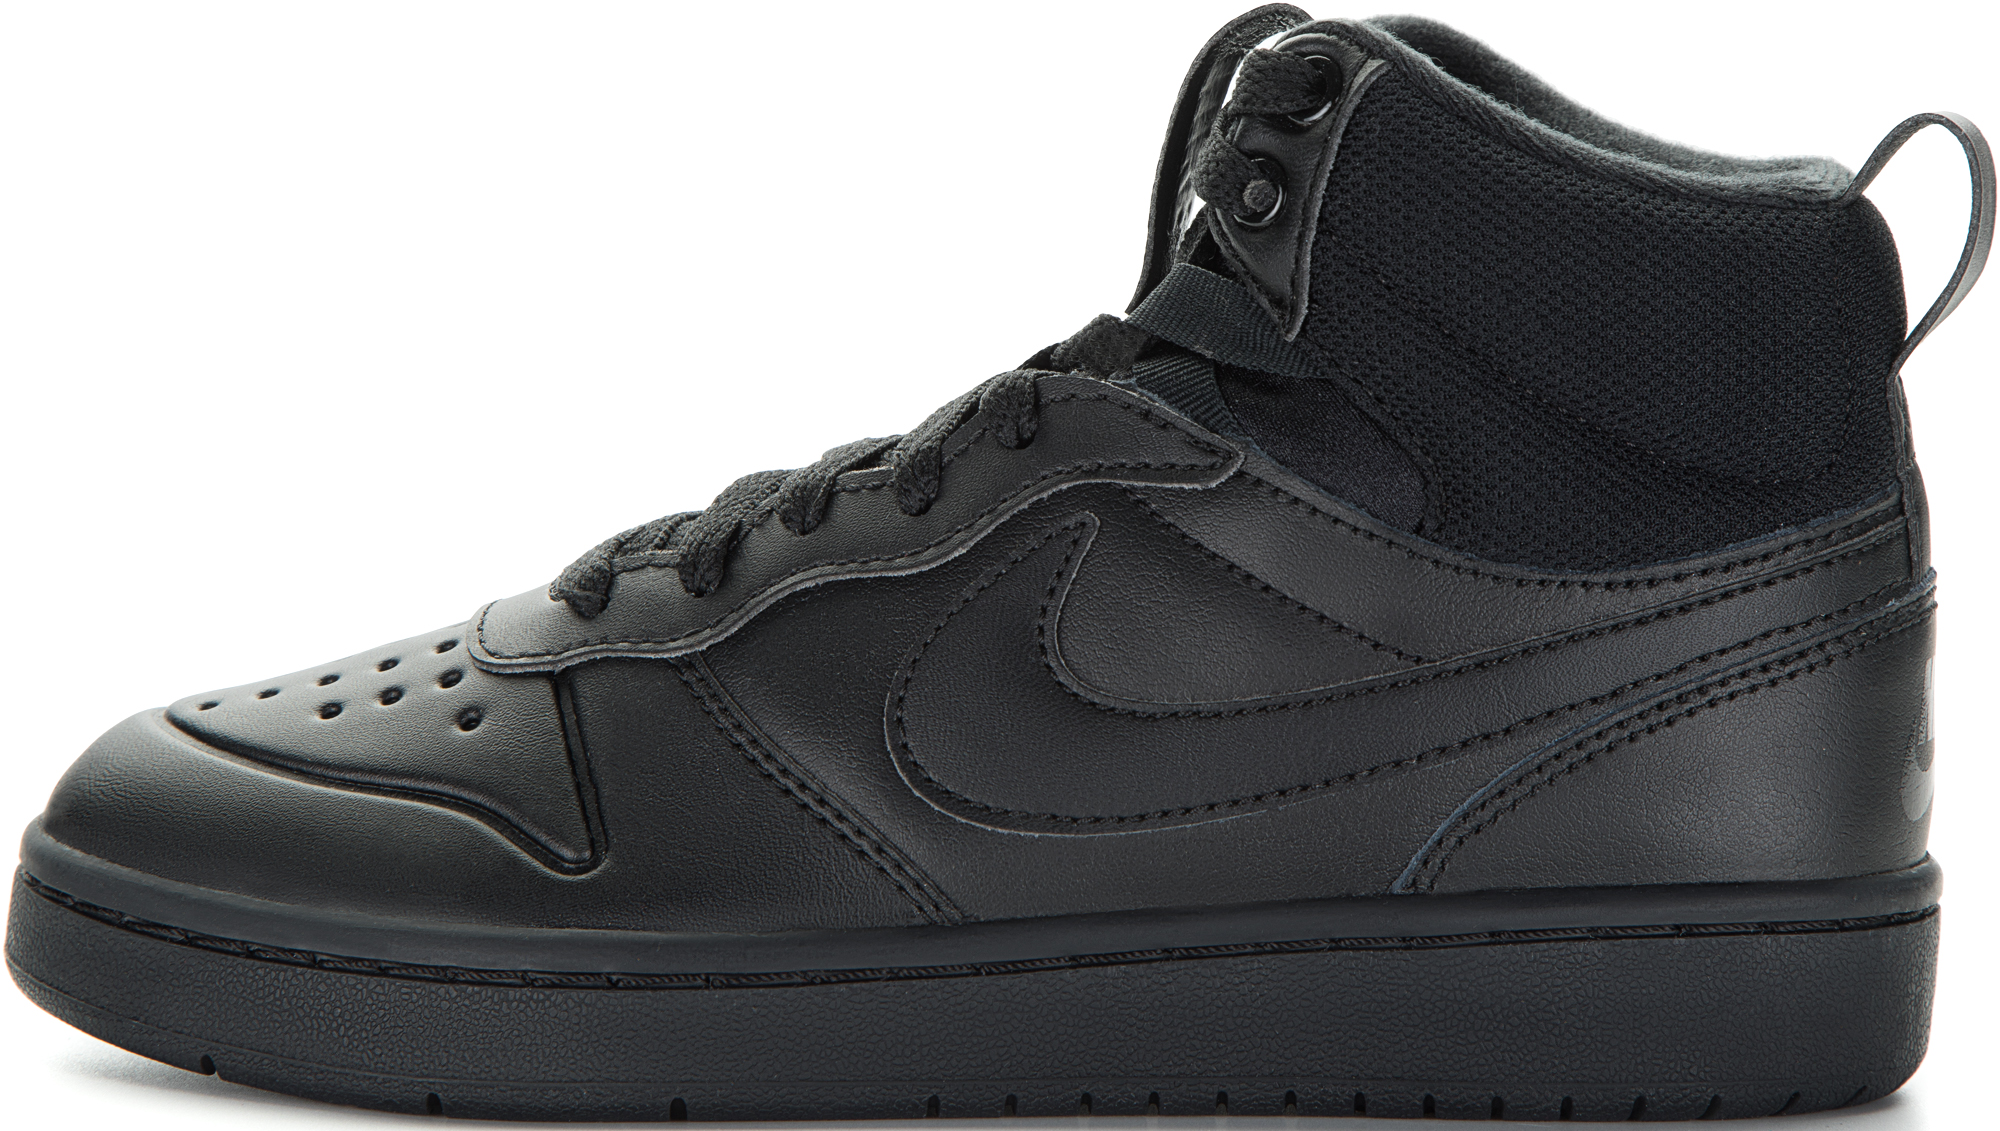 Nike Кеды детские Nike Court Borough Mid 2 Boot, размер 29 кеды nike кеды nike court borough mid td